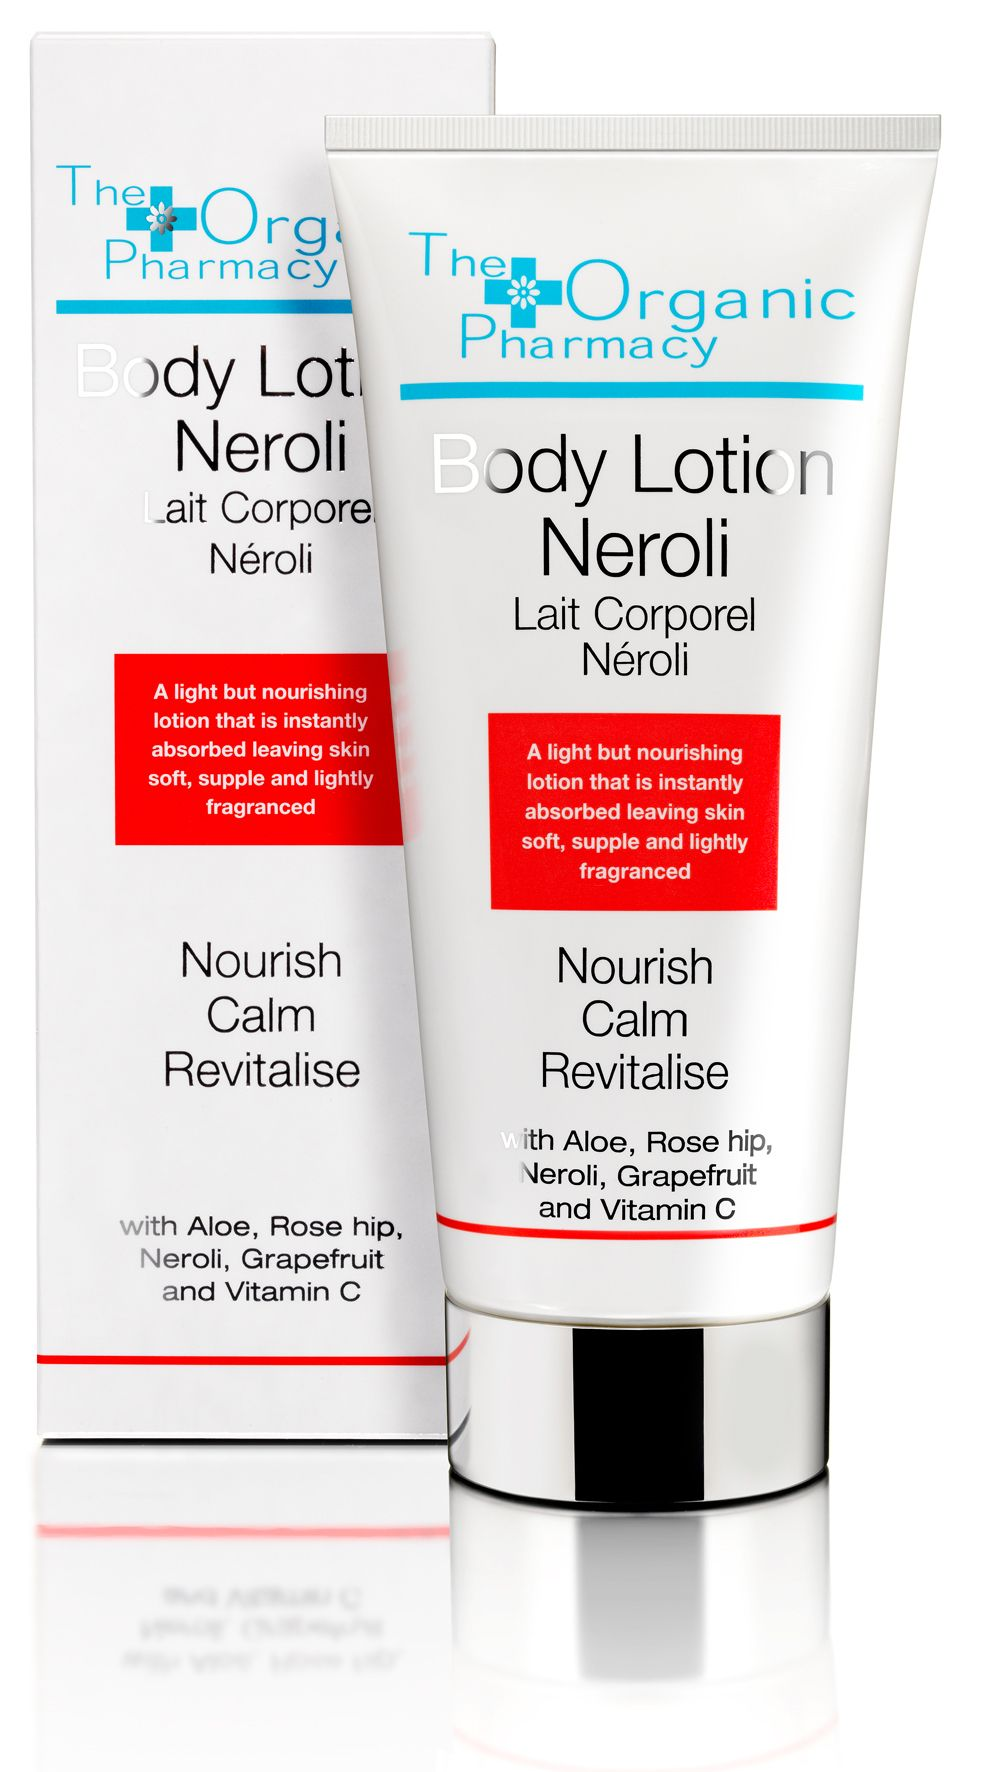 Neroli Body Lotion. The uplifting scent of Neroli revitalises and rejuvenates leaving the skin soft and fragrant.